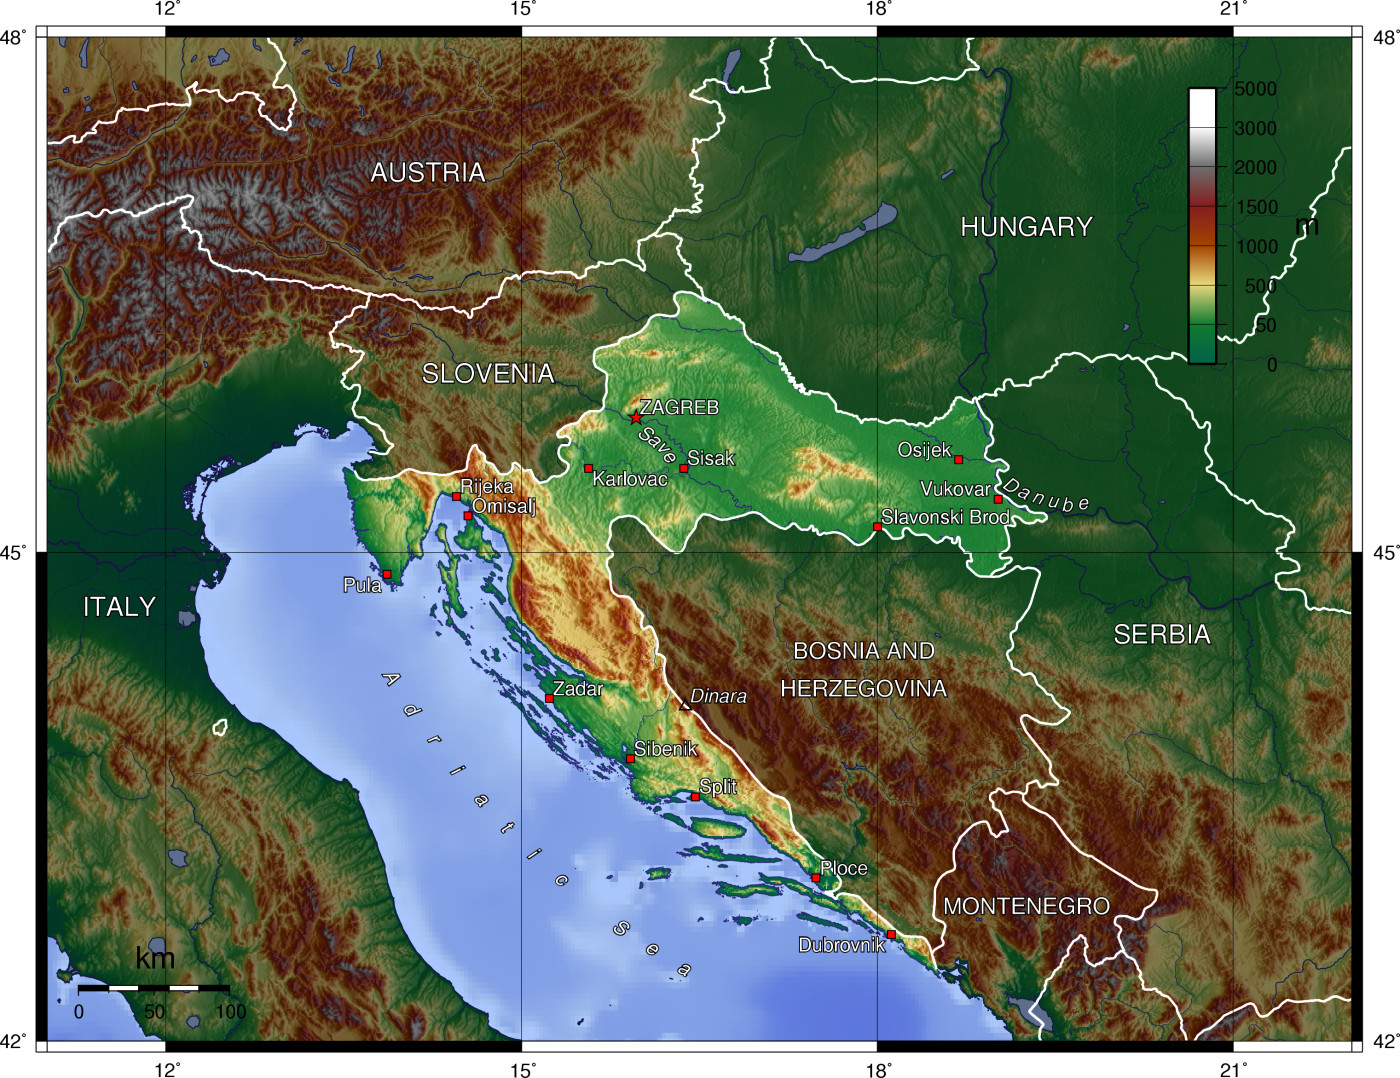 Geography of Croatia - Wikipedia on portugal map, czech republic map, sweden map, argentina map, iceland map, europe map, belgium map, india map, thailand map, belarus map, italy map, dalmatia map, turkey map, australia map, slovenia map, libya map, lebanon map, germany map, yugoslavia map, greece map, cuba map, denmark map, syria map, france map, italian map, ukraine map, spain map, russia map, eurasia map, austria map, egypt map, chile map, cyprus map, ireland map, mexico map, odessa map,